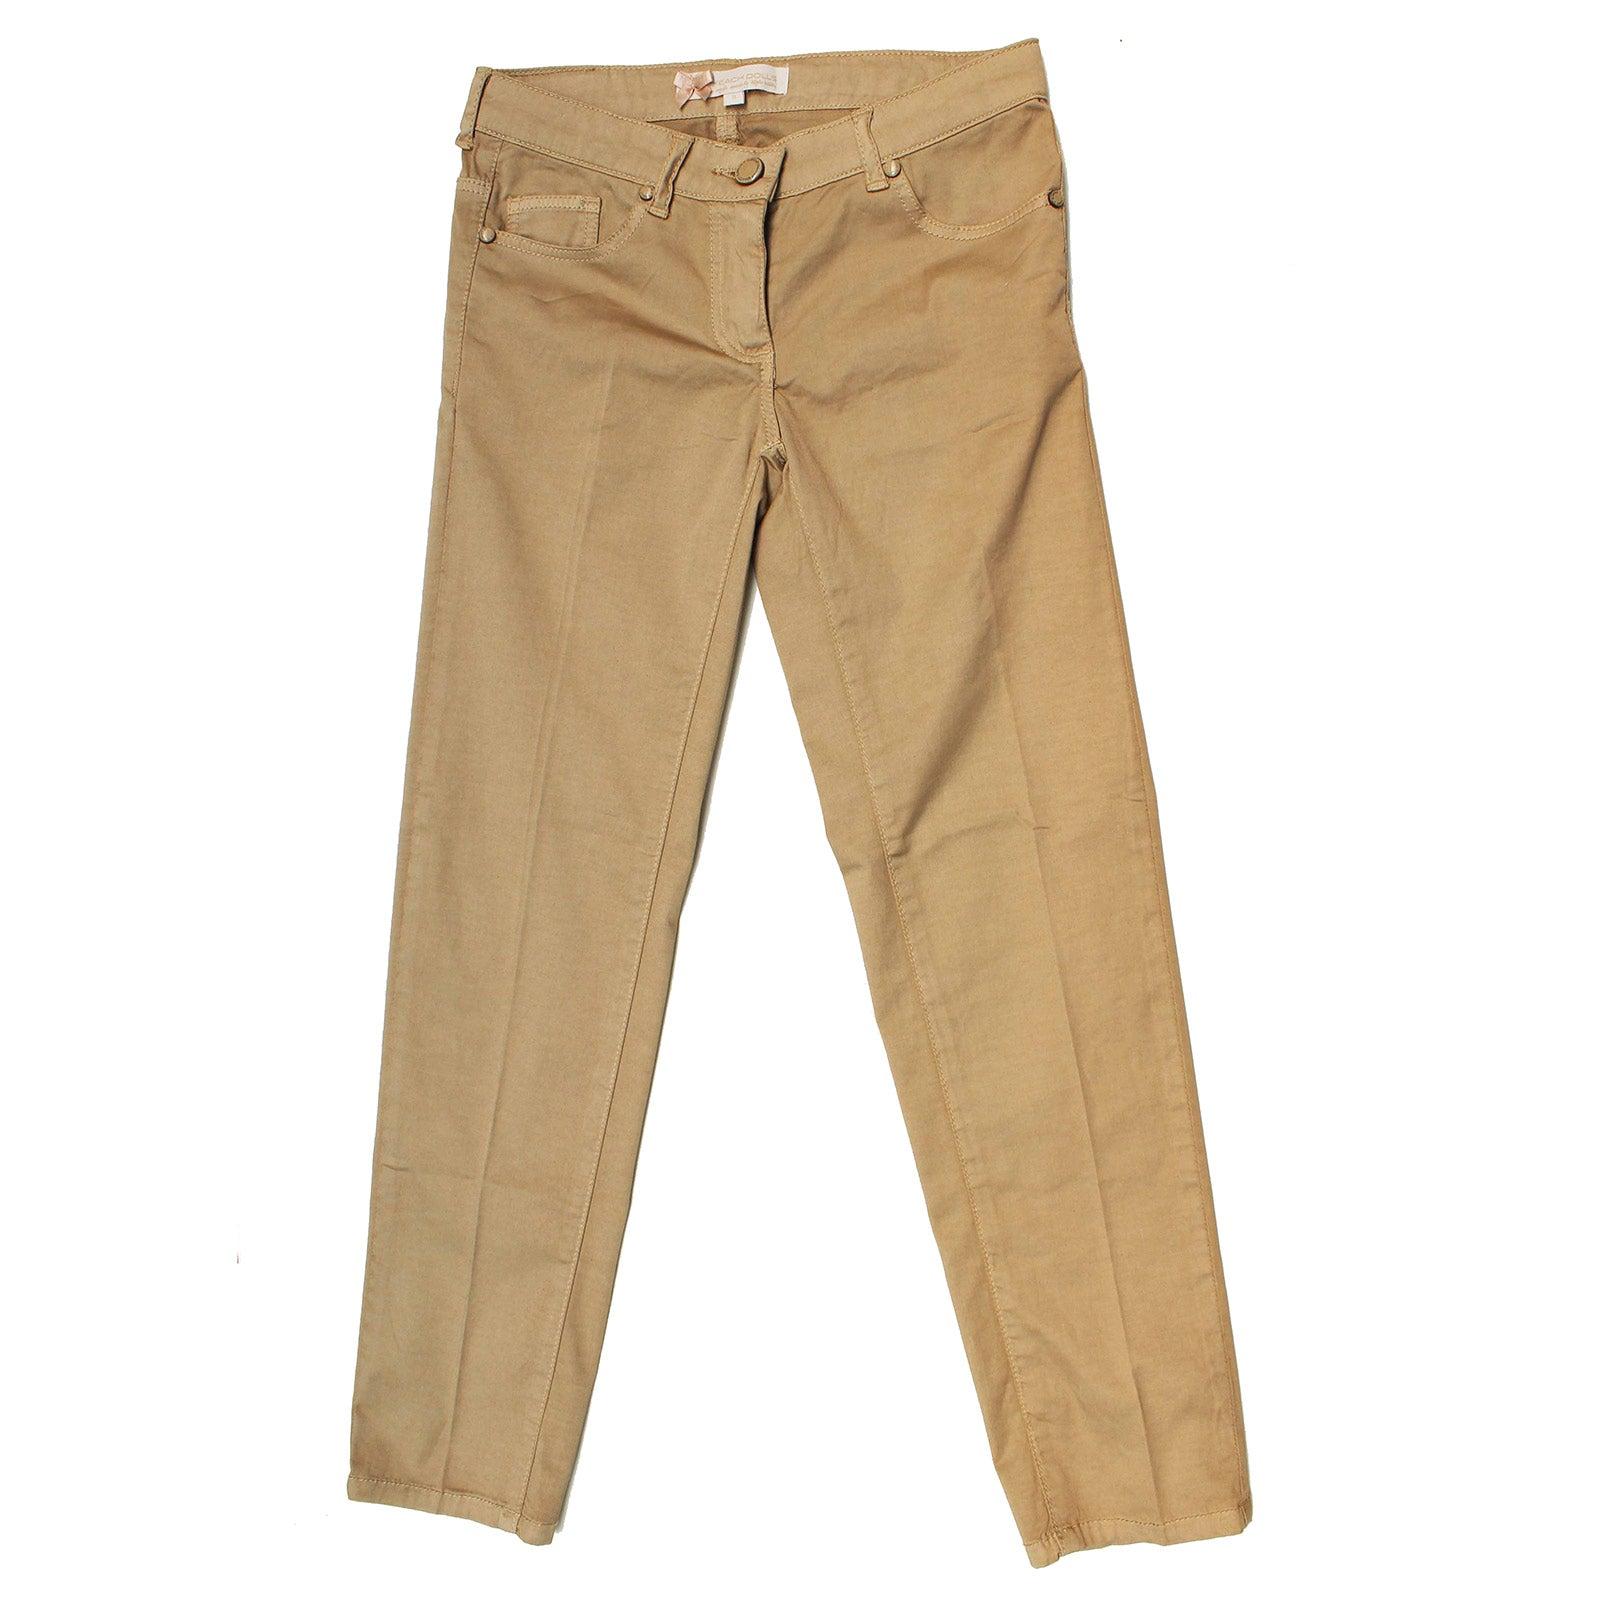 Trousers from the Silvian Heach girl's clothing line with adjustable five-pocket size inside. ...